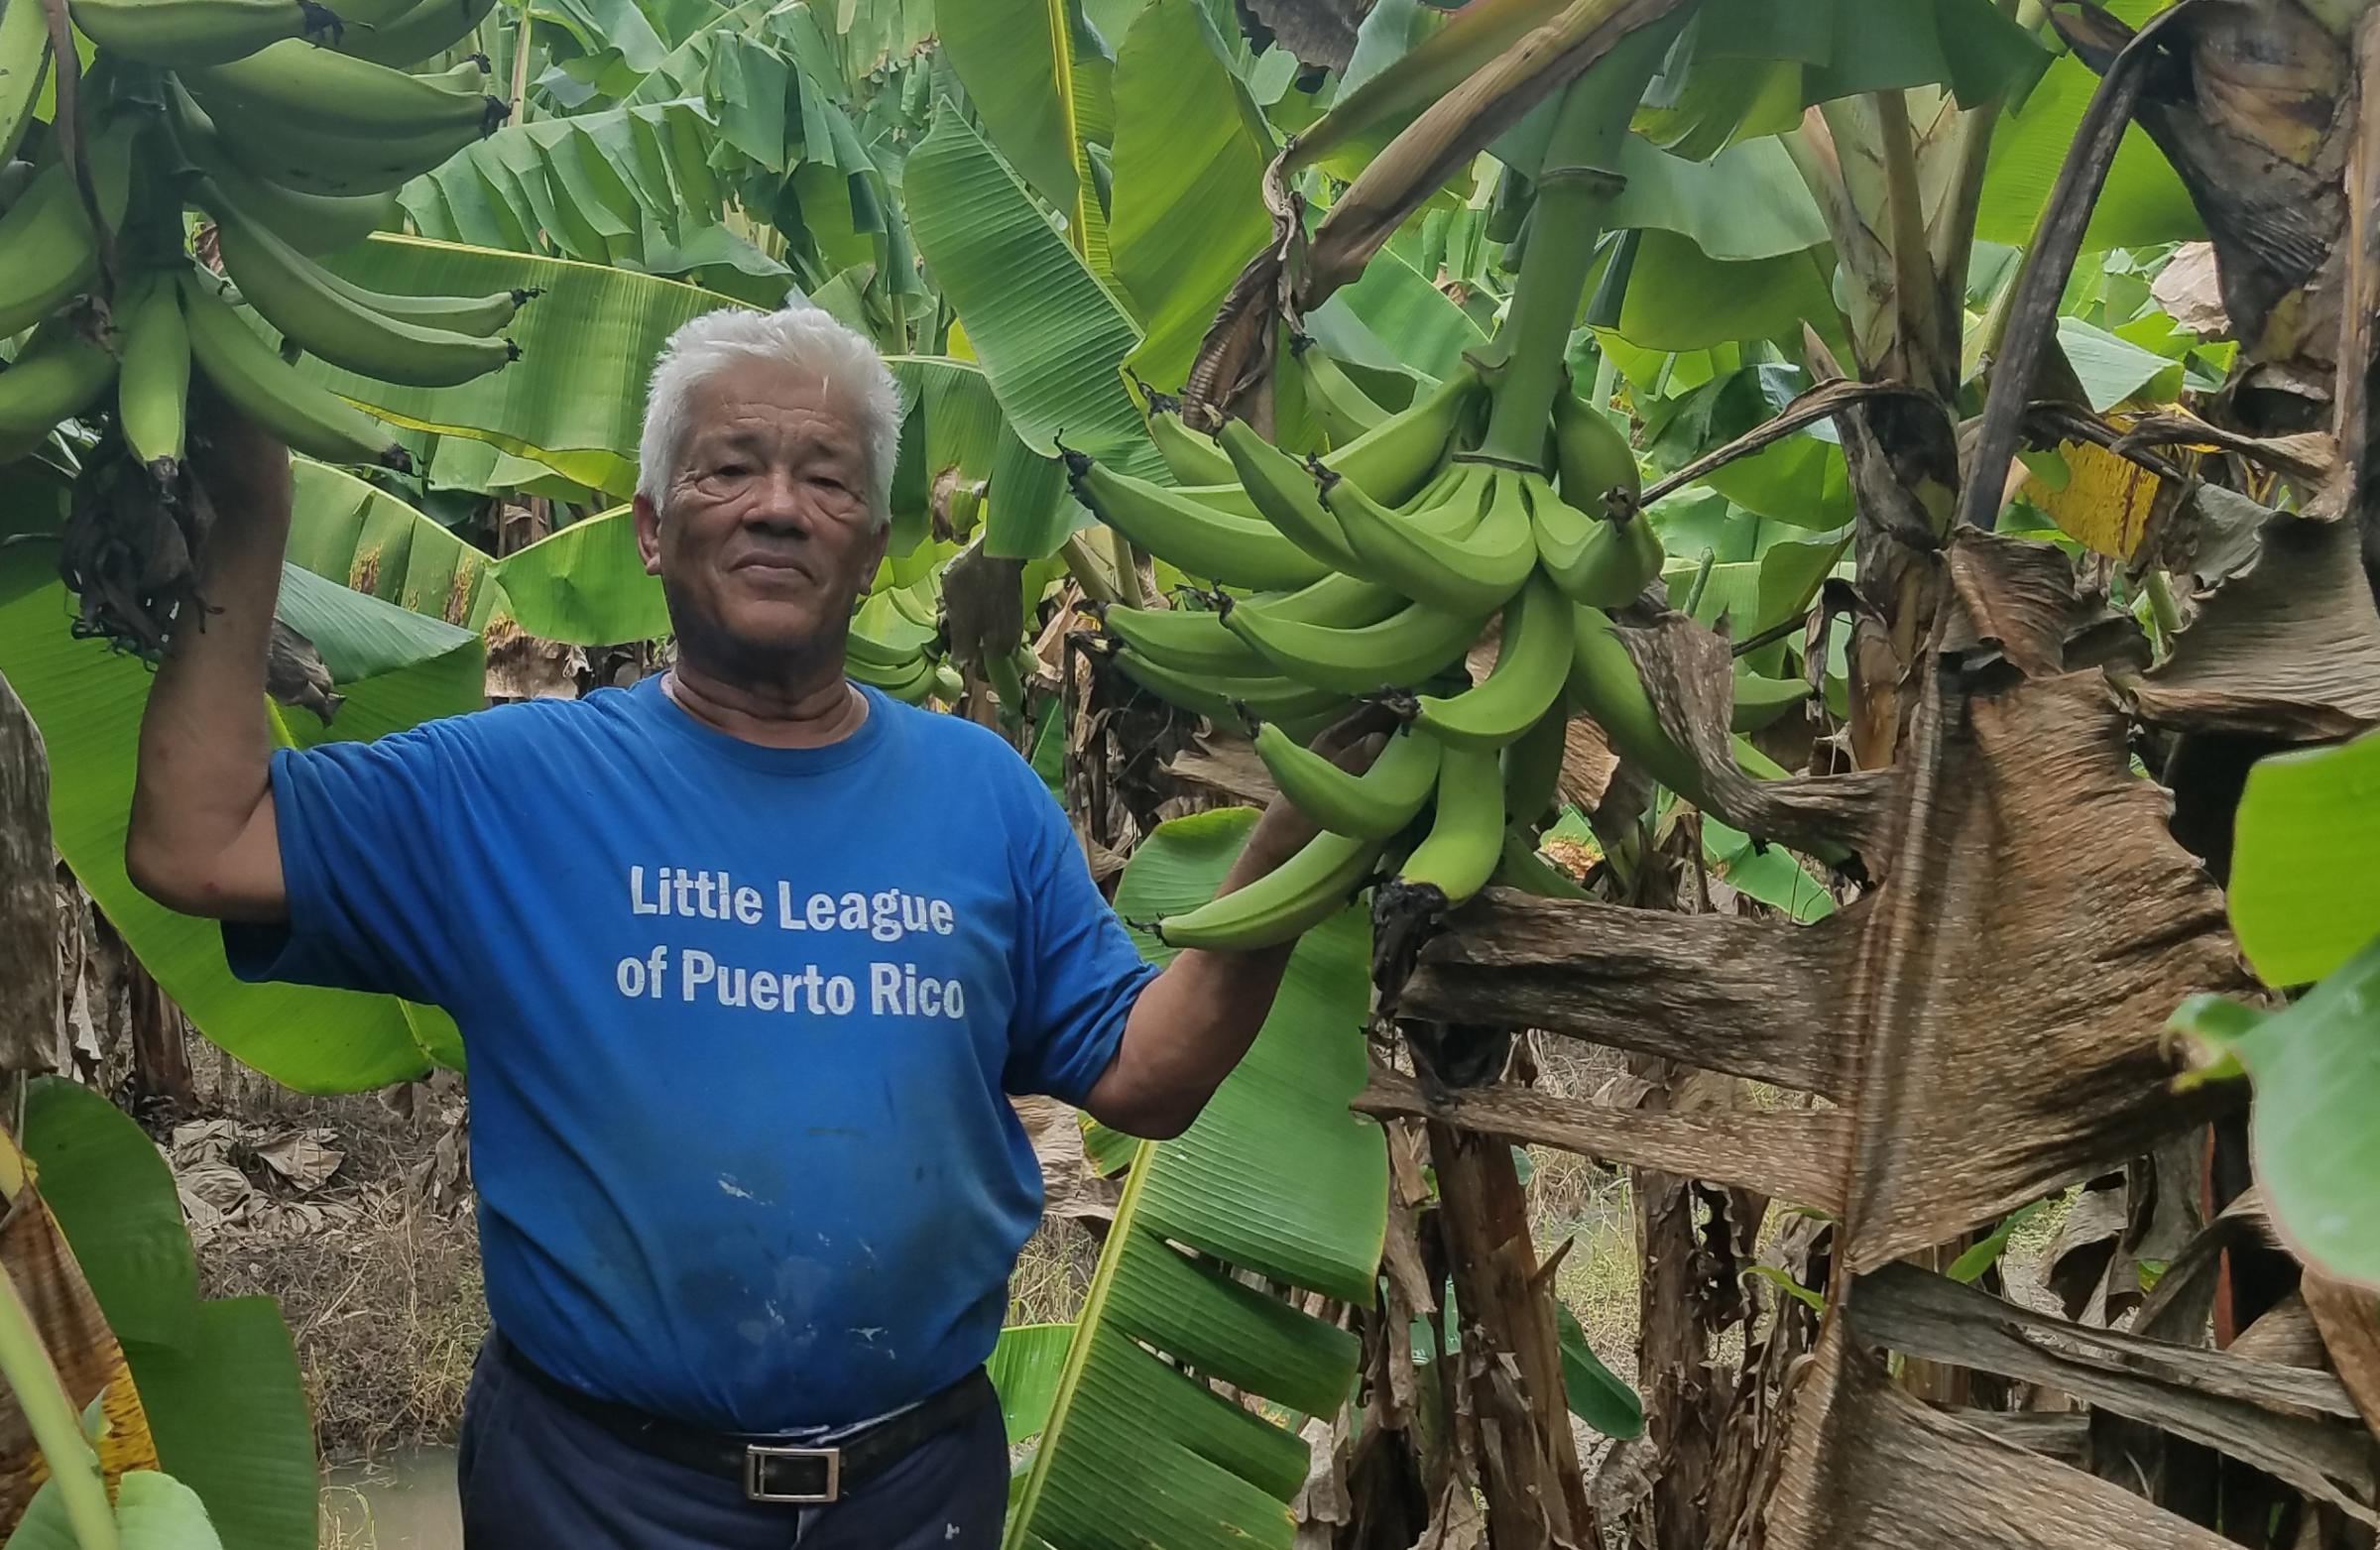 """Luis Pinto lost about $300,000 worth of plantain trees, livestock, roads and fences on his farm near Yabucoa, Puerto Rico. """"When I saw the desctruction, I just cried. But I said, 'The show must go on,'"""" he says. (ALLISON KEYES/NETNEBRASK/FERN)"""